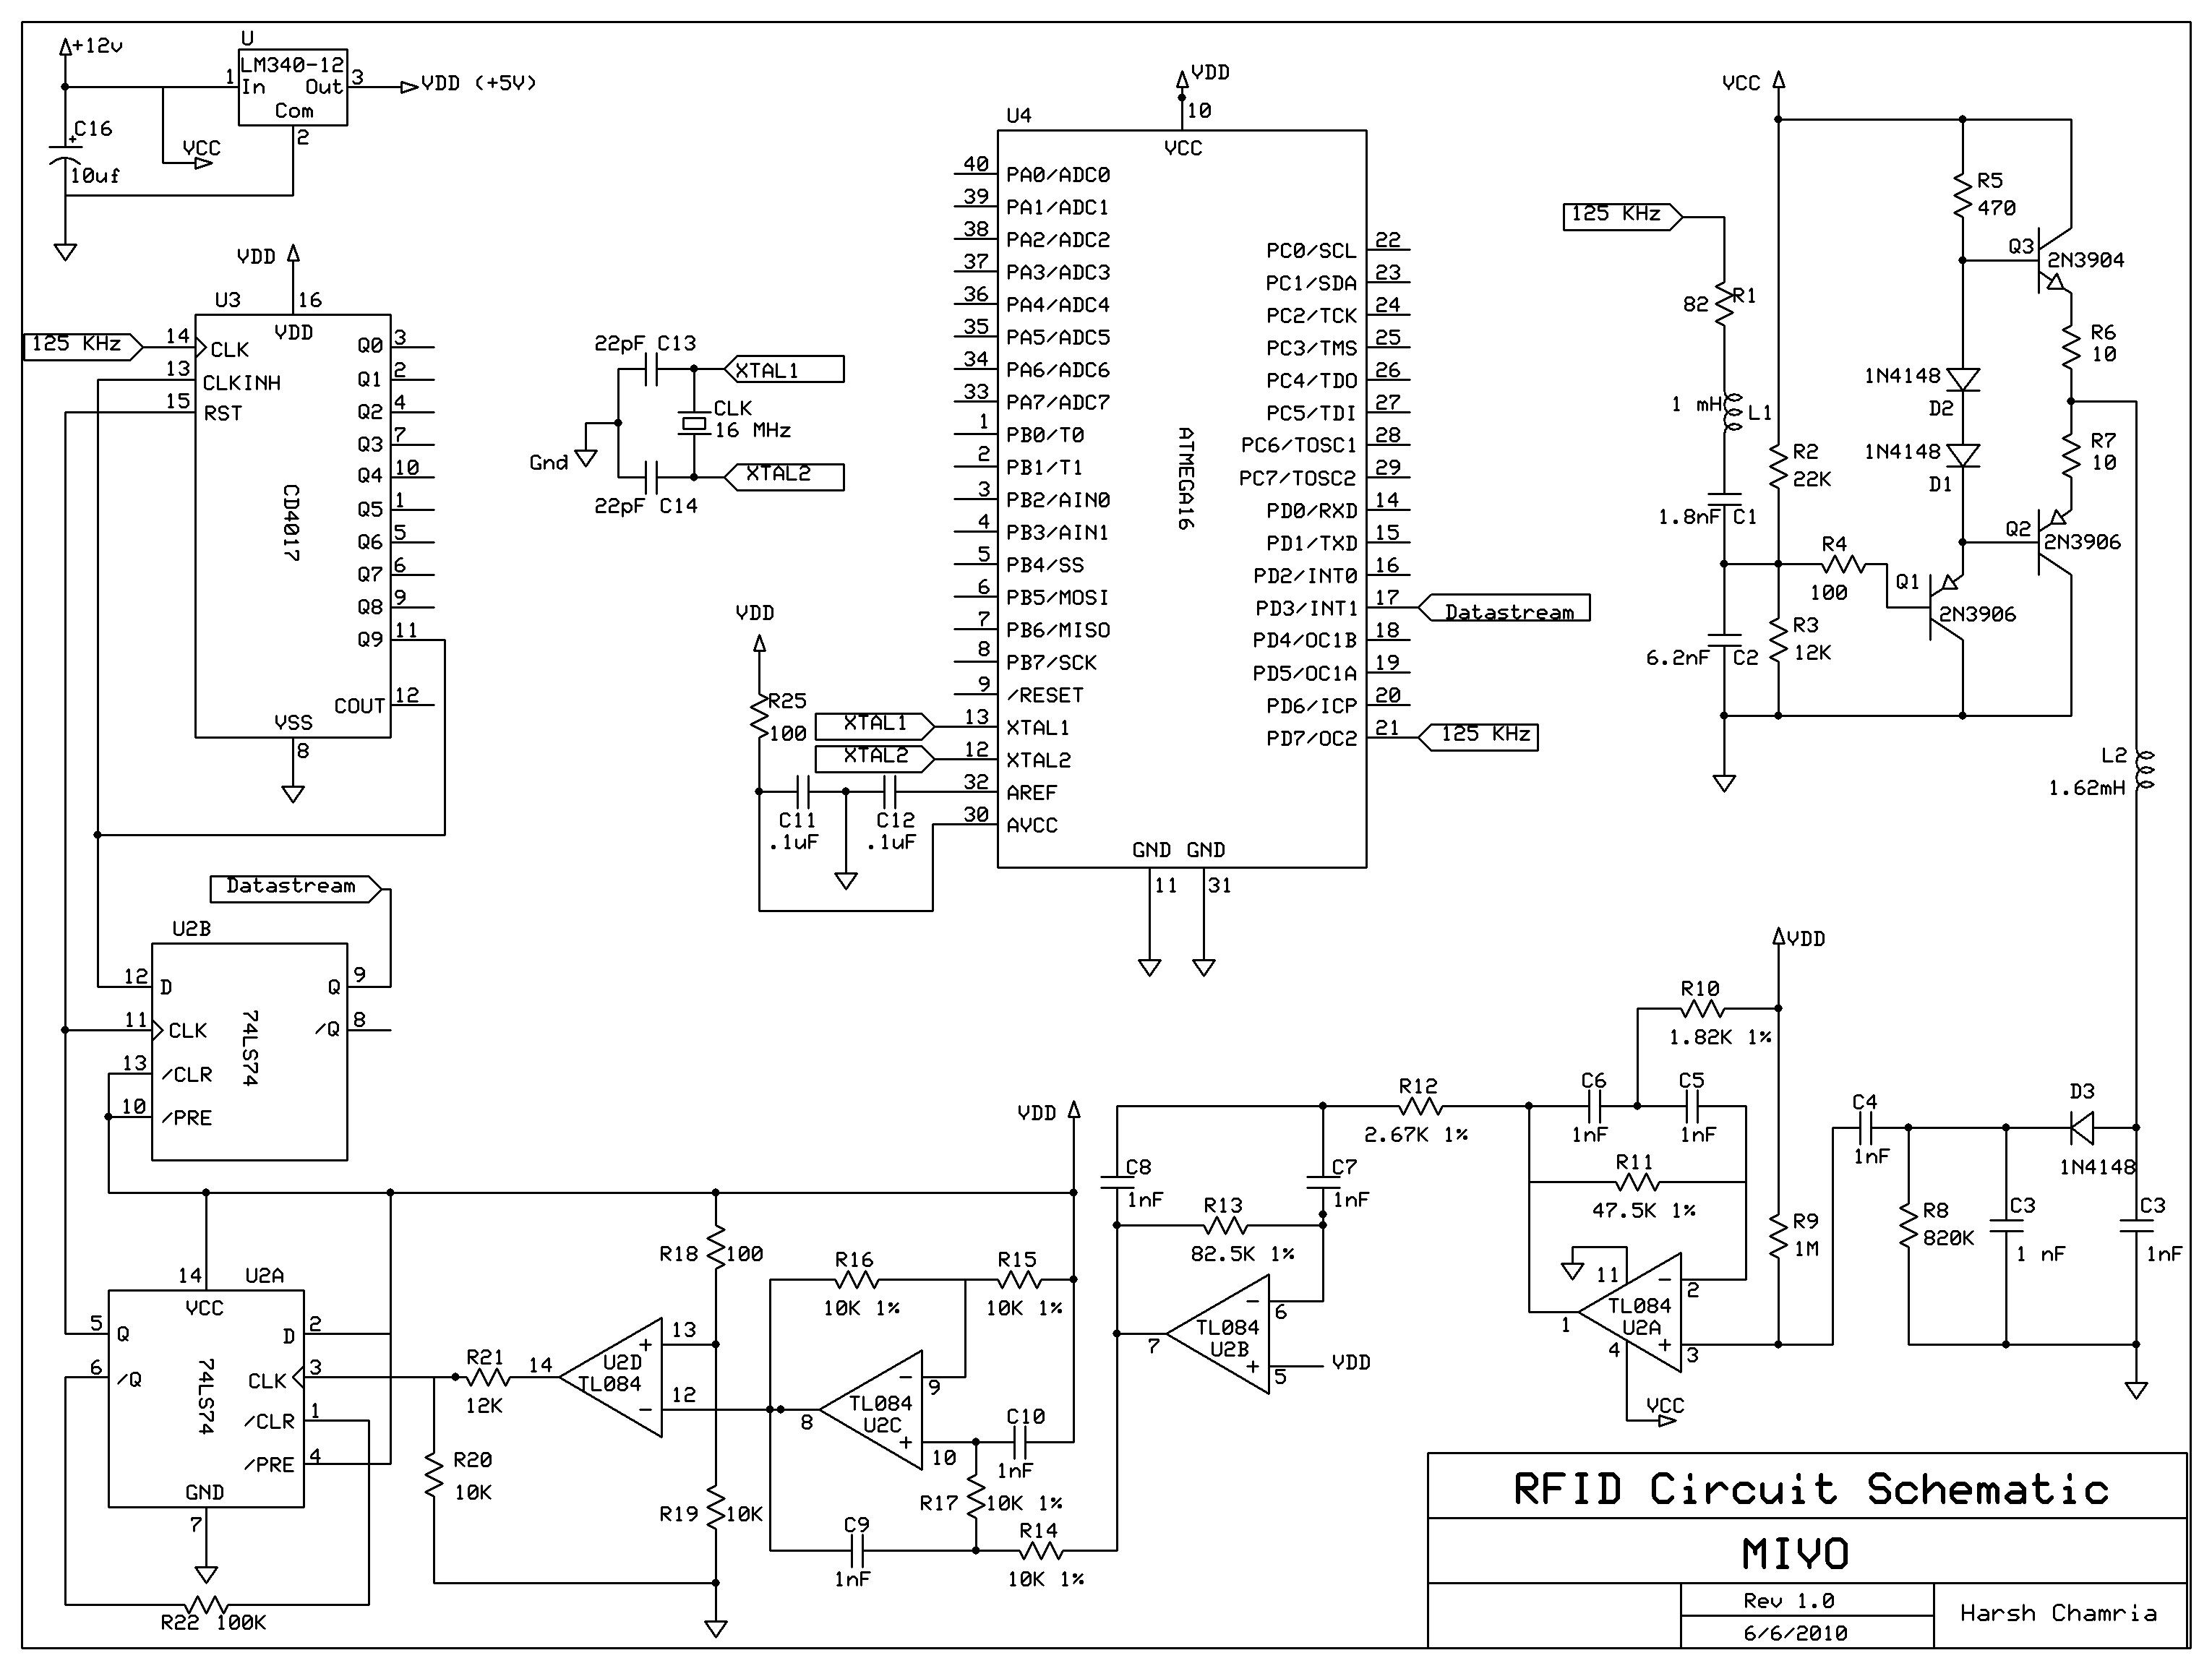 rfid circuit diagram photoelectric cell circuit diagram mivo- rfid based mobile payment system